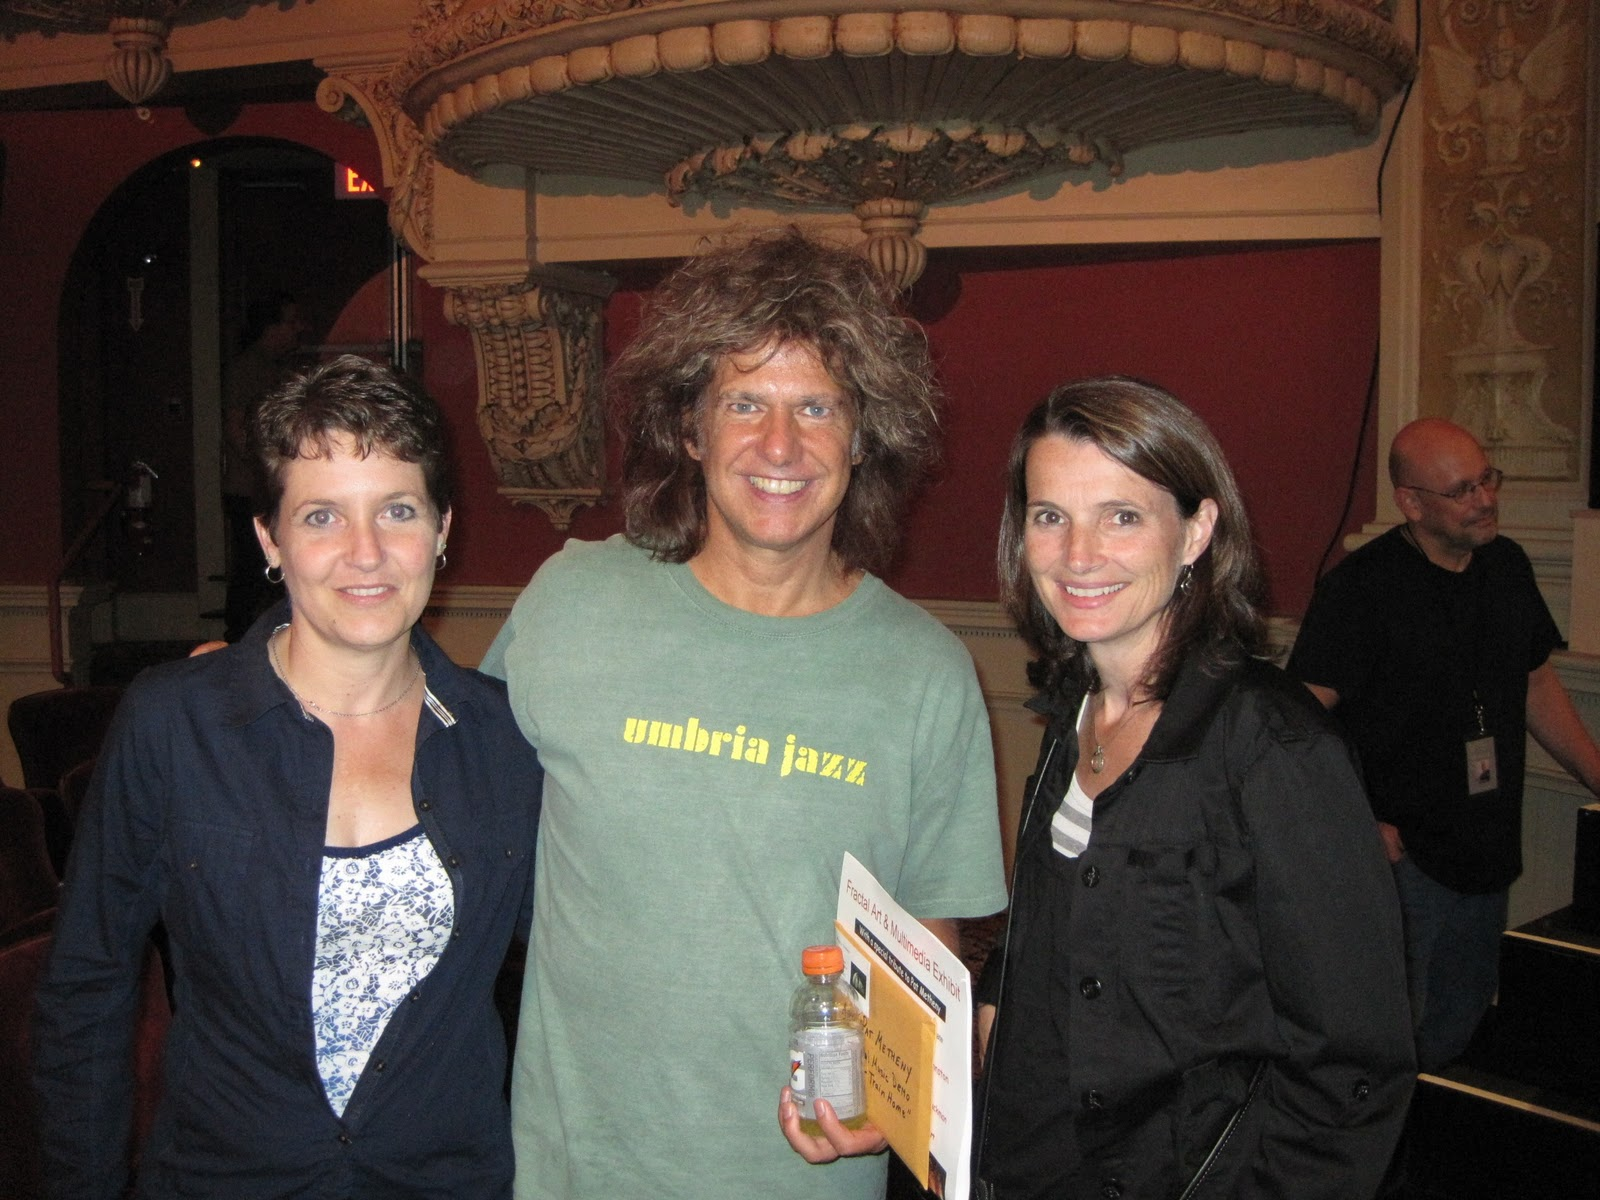 50x50x2010 marianne s year birthday 10 backstage with pat metheny october 10 2010